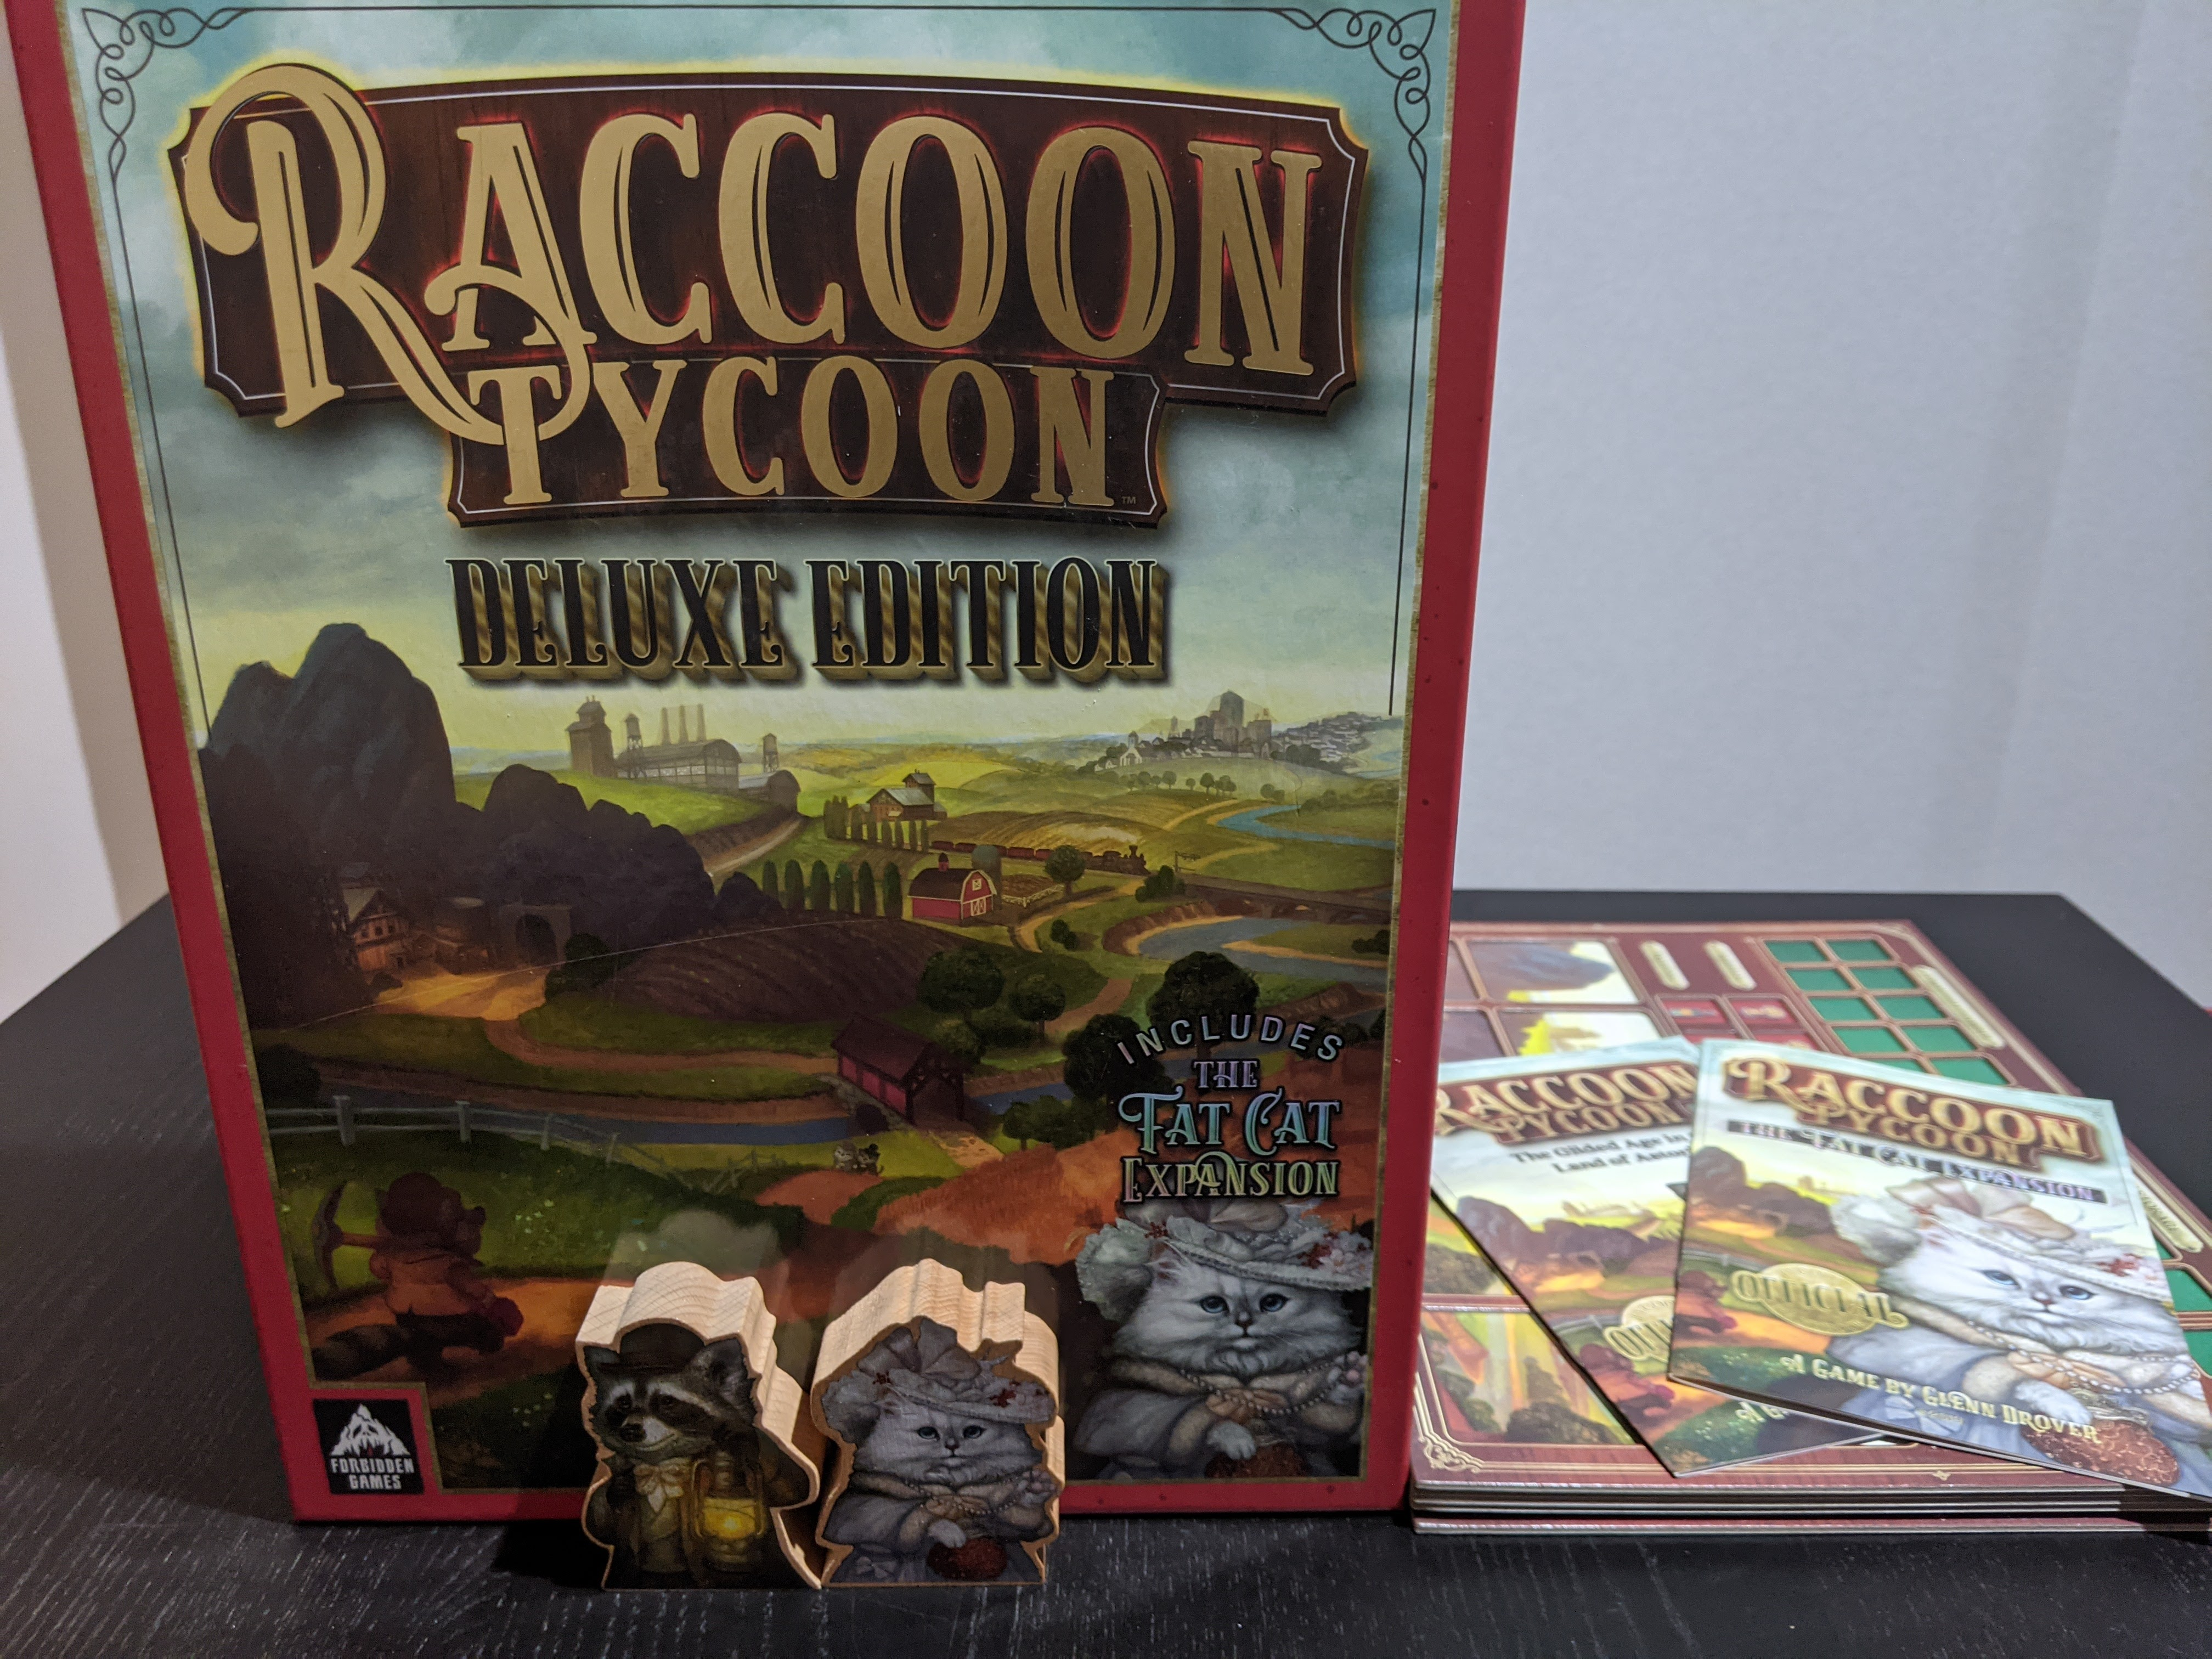 The box of Raccoon Tycoon deluxe addition. Showing off the size of the box, and the first player tokens.